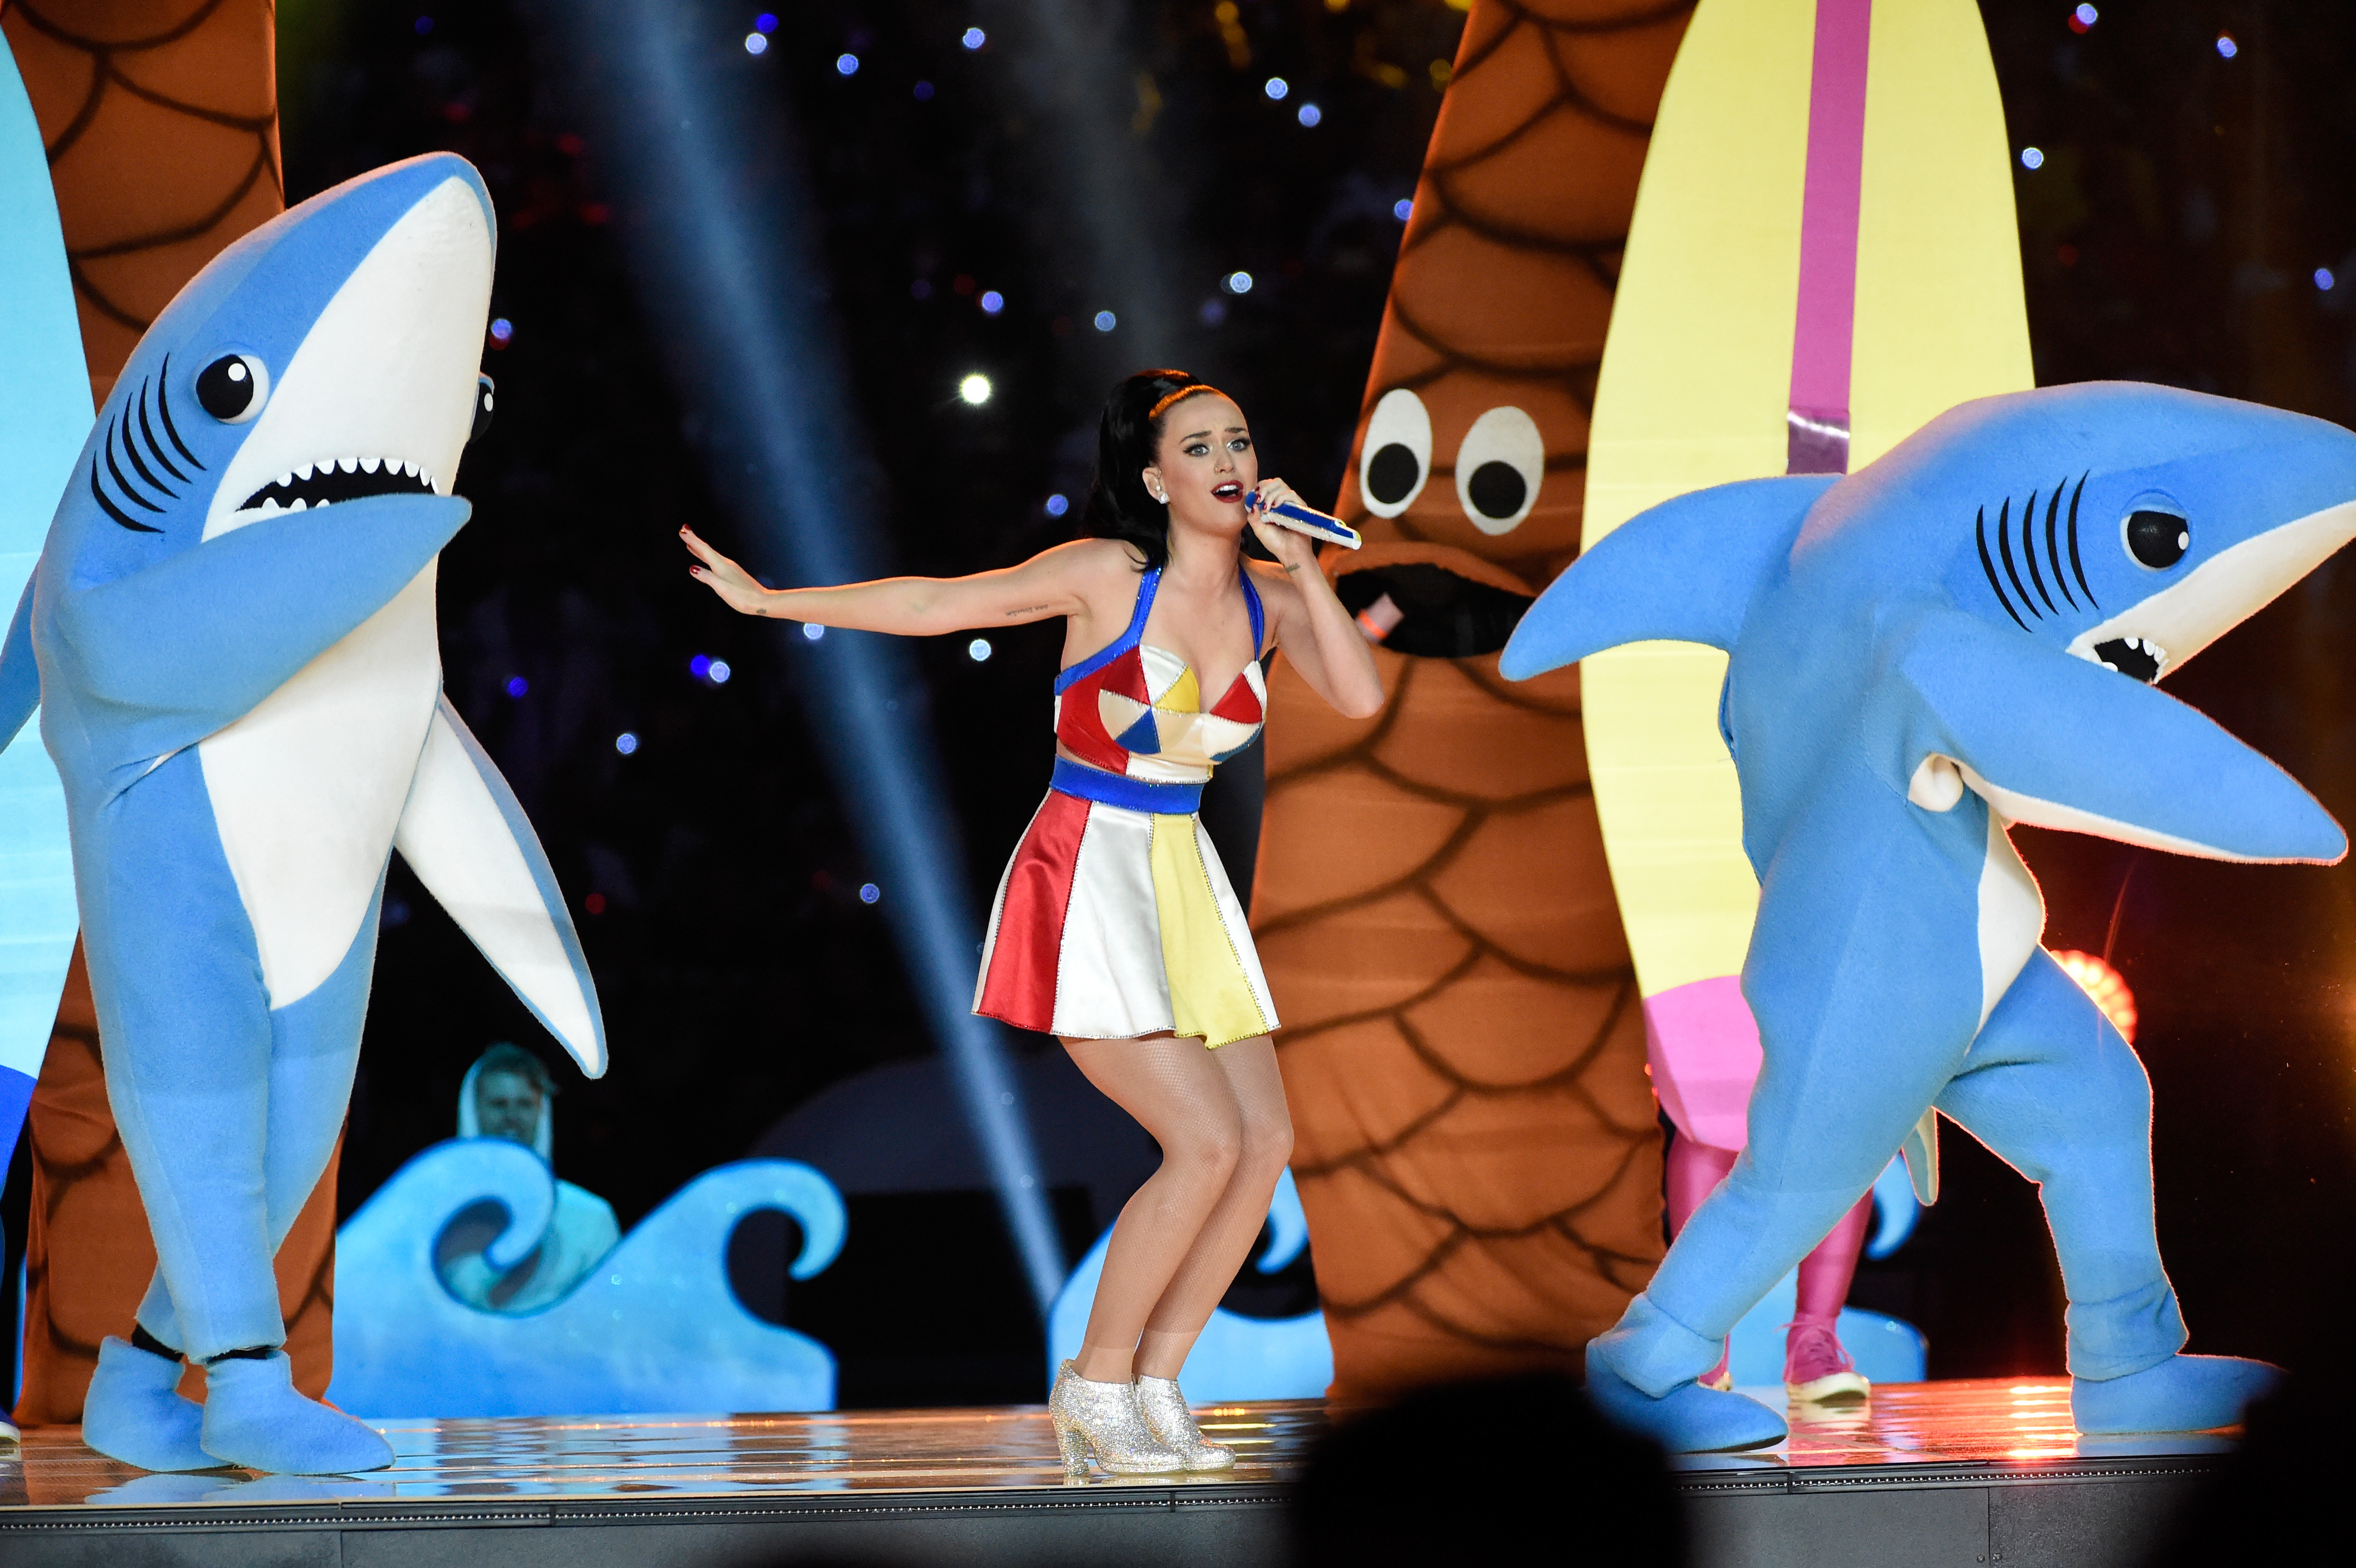 Katy Perry in 2015